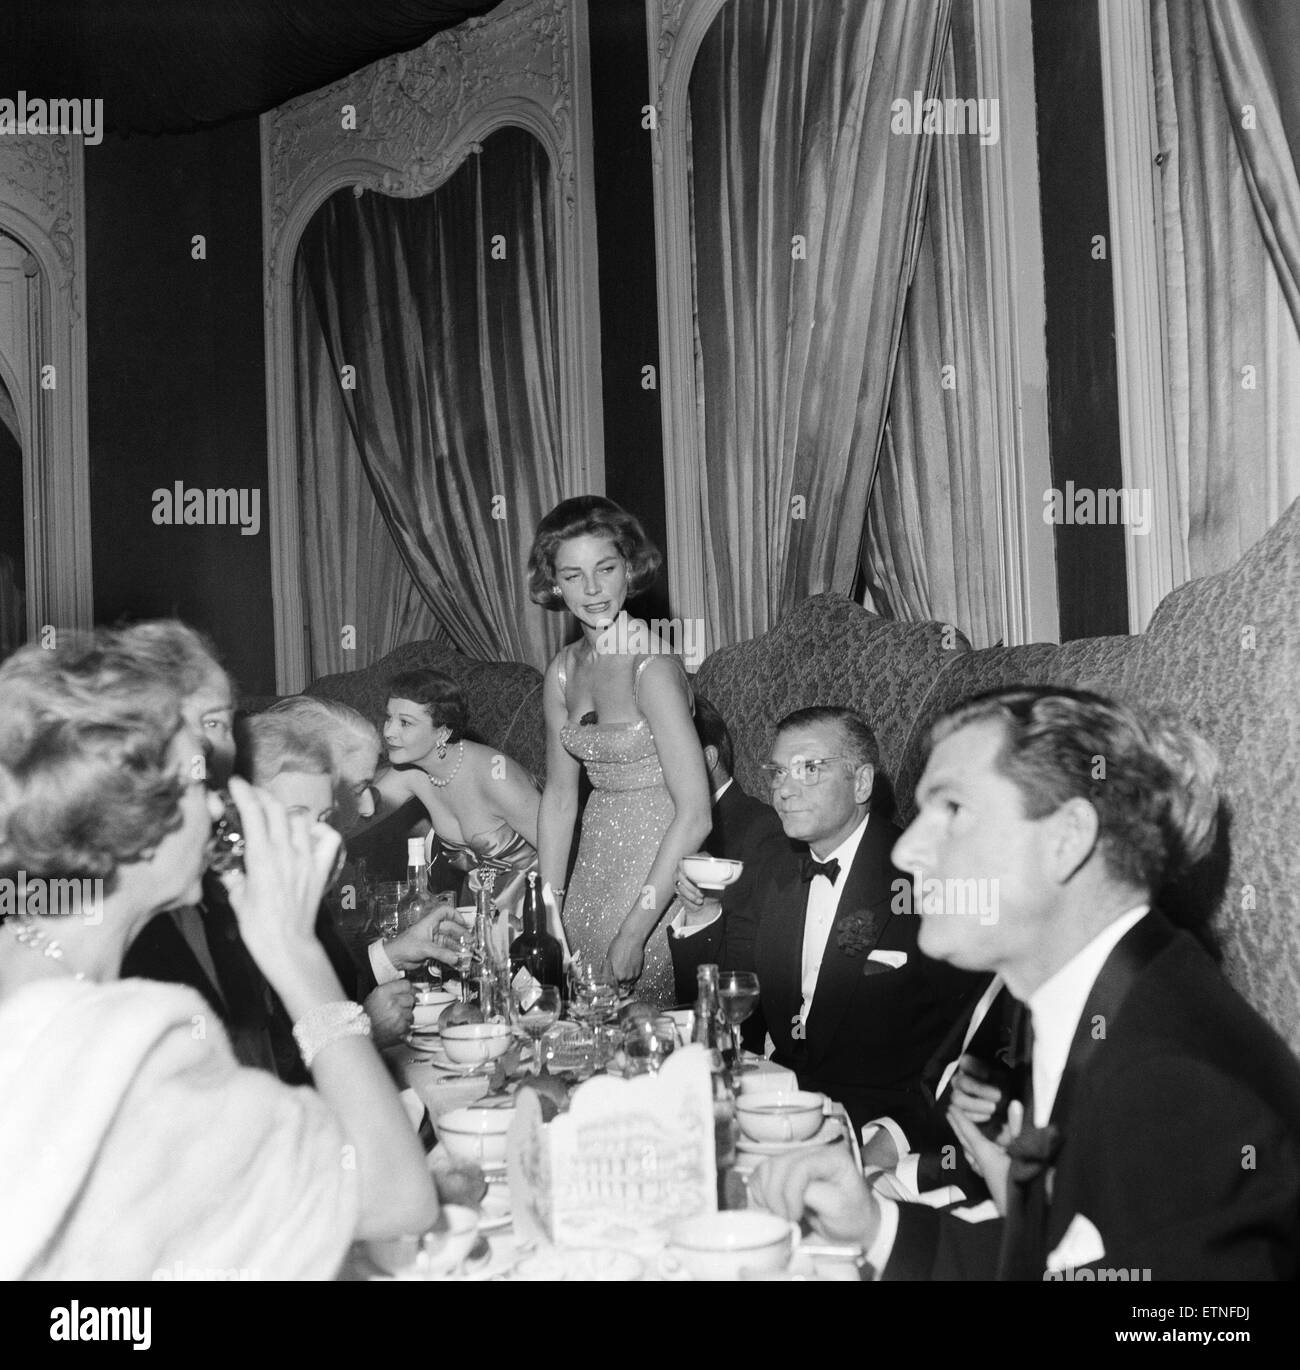 Guests attending a party held by Laurence Olivier and Lauren Bacall. Lauren Bacall about to sit down, with guests - Stock Image